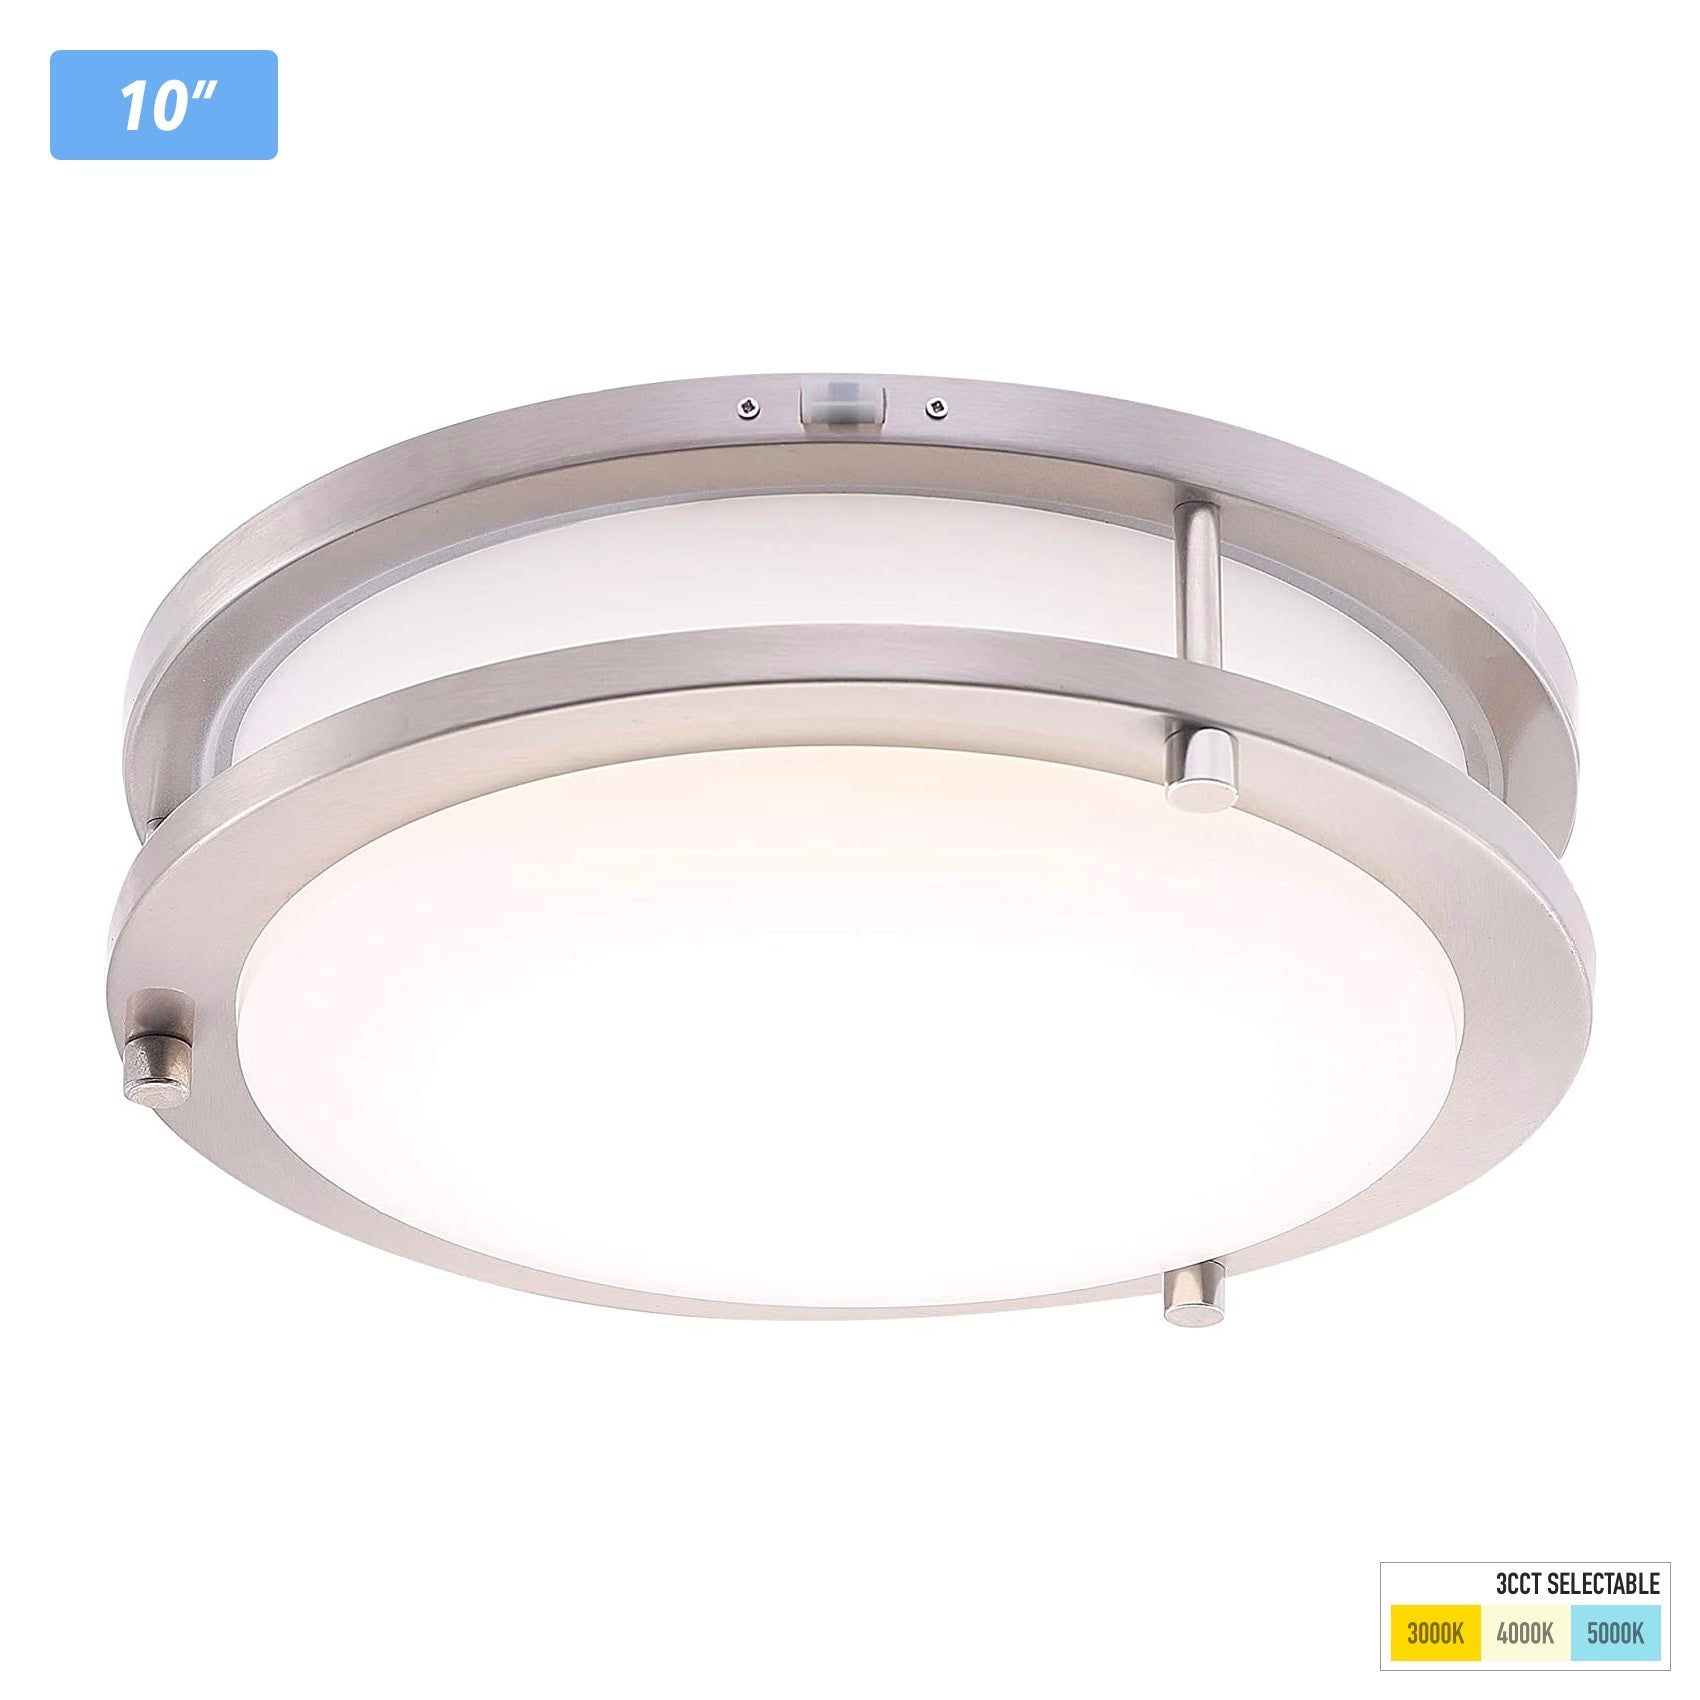 Cloudy Bay Led Flush Mount Ceiling Light 10 Inch 120v 17w Dimmable 1050lm 3000k 4000k 5000k Adjustable Cri 90 Brushed Nickel Lighting Fixture For Kitchen Hallway Bathroom Stairwell Cloudy Bay Lighting